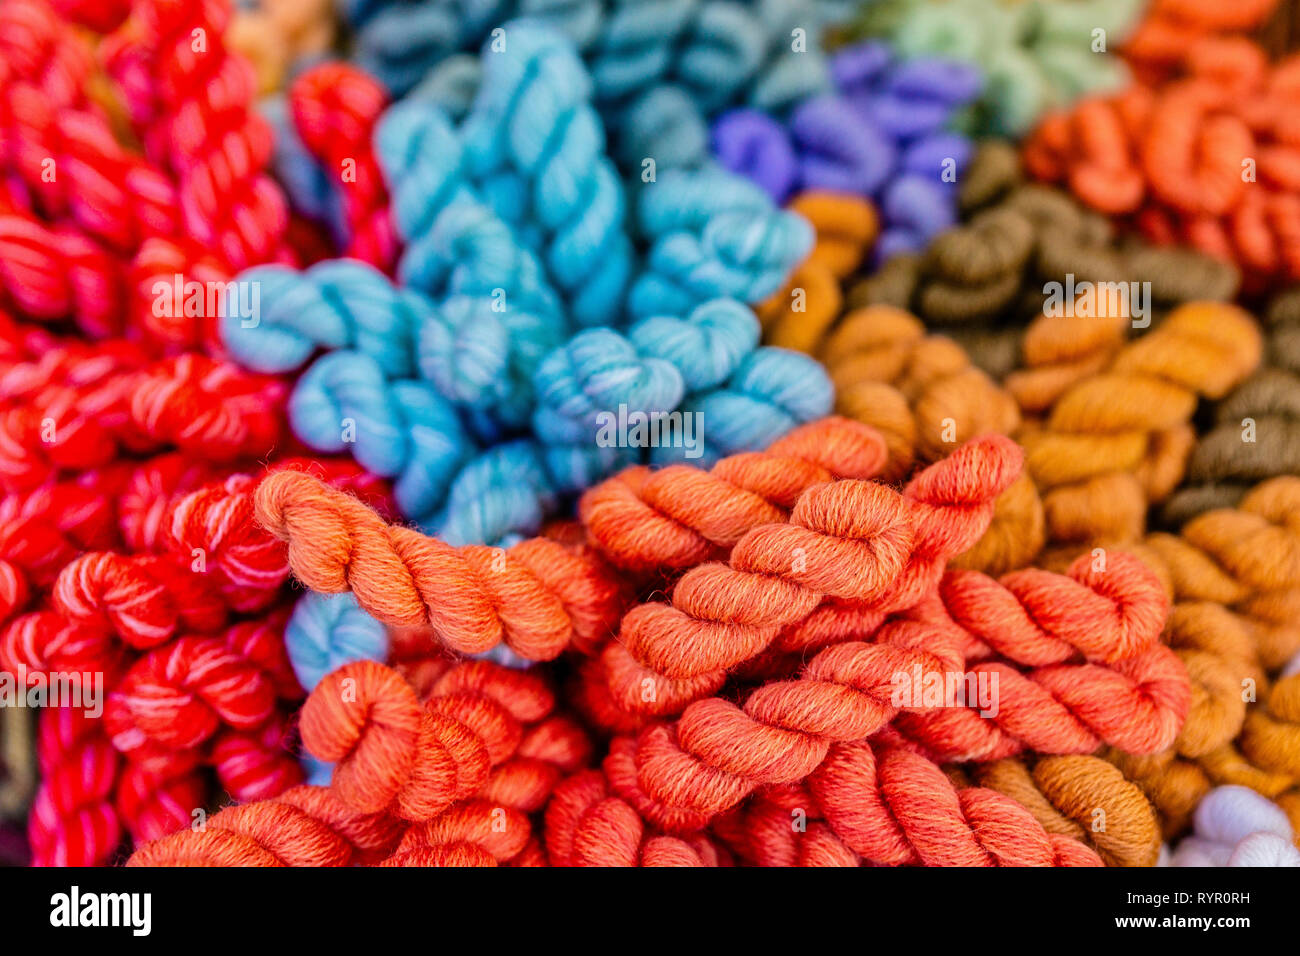 A Pile Of Natural Knitting Yarn Of Red Blue And Brown Colors Is